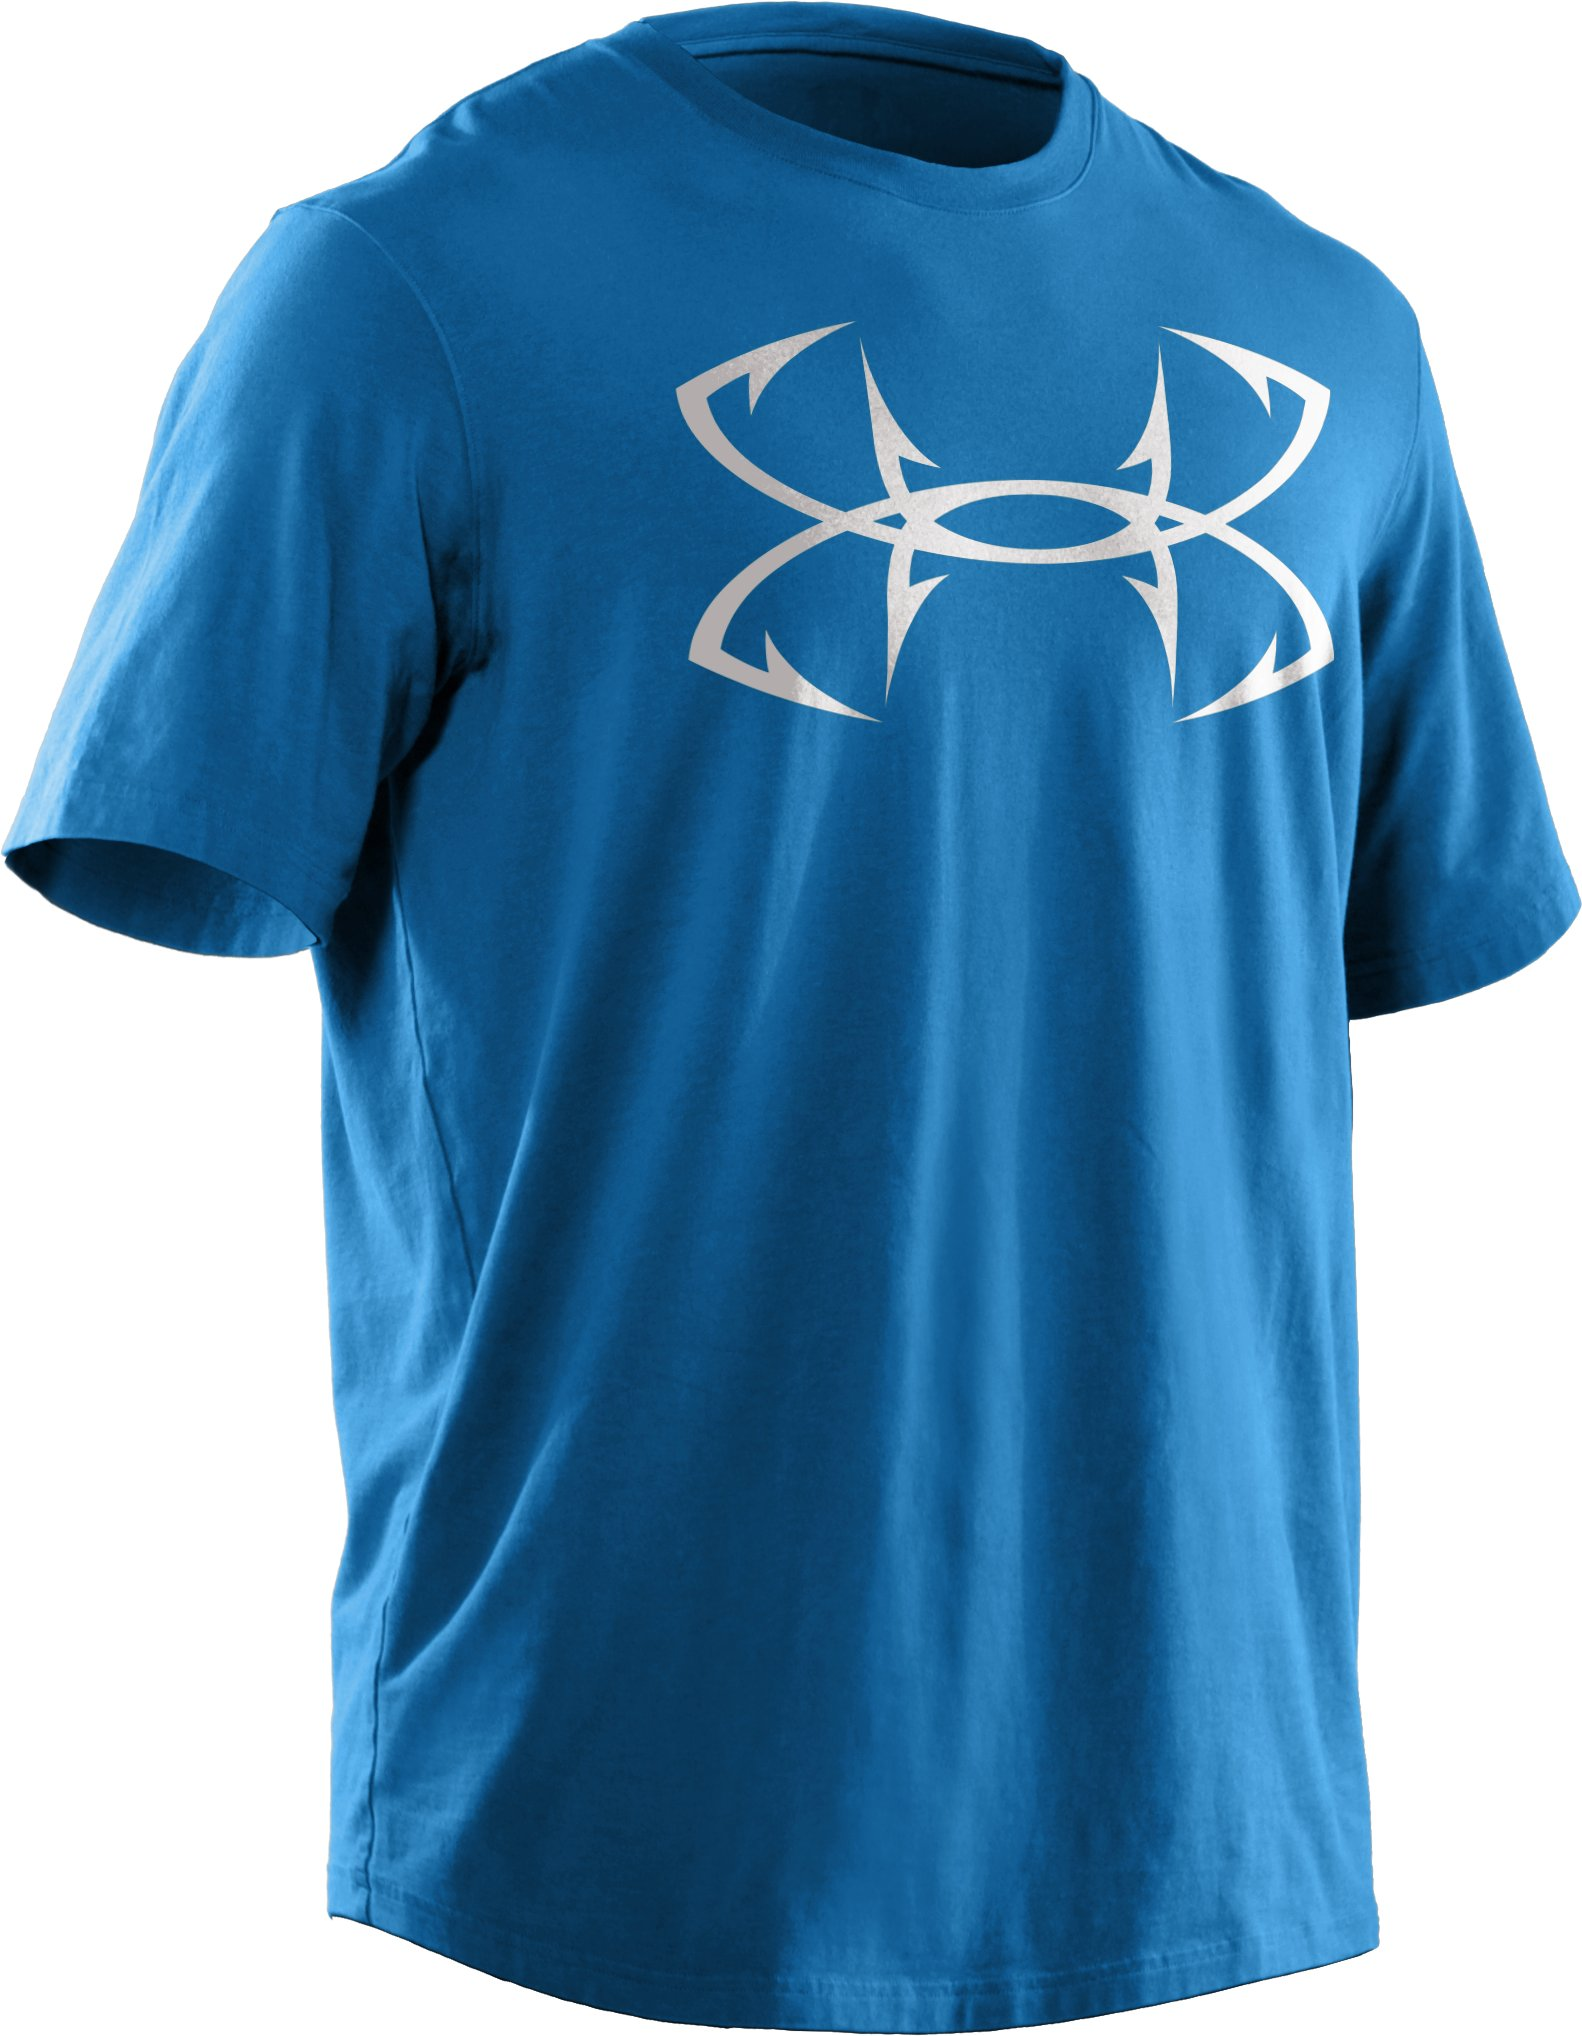 Men's UA Fish Hook Logo T-Shirt, St. Tropez, undefined